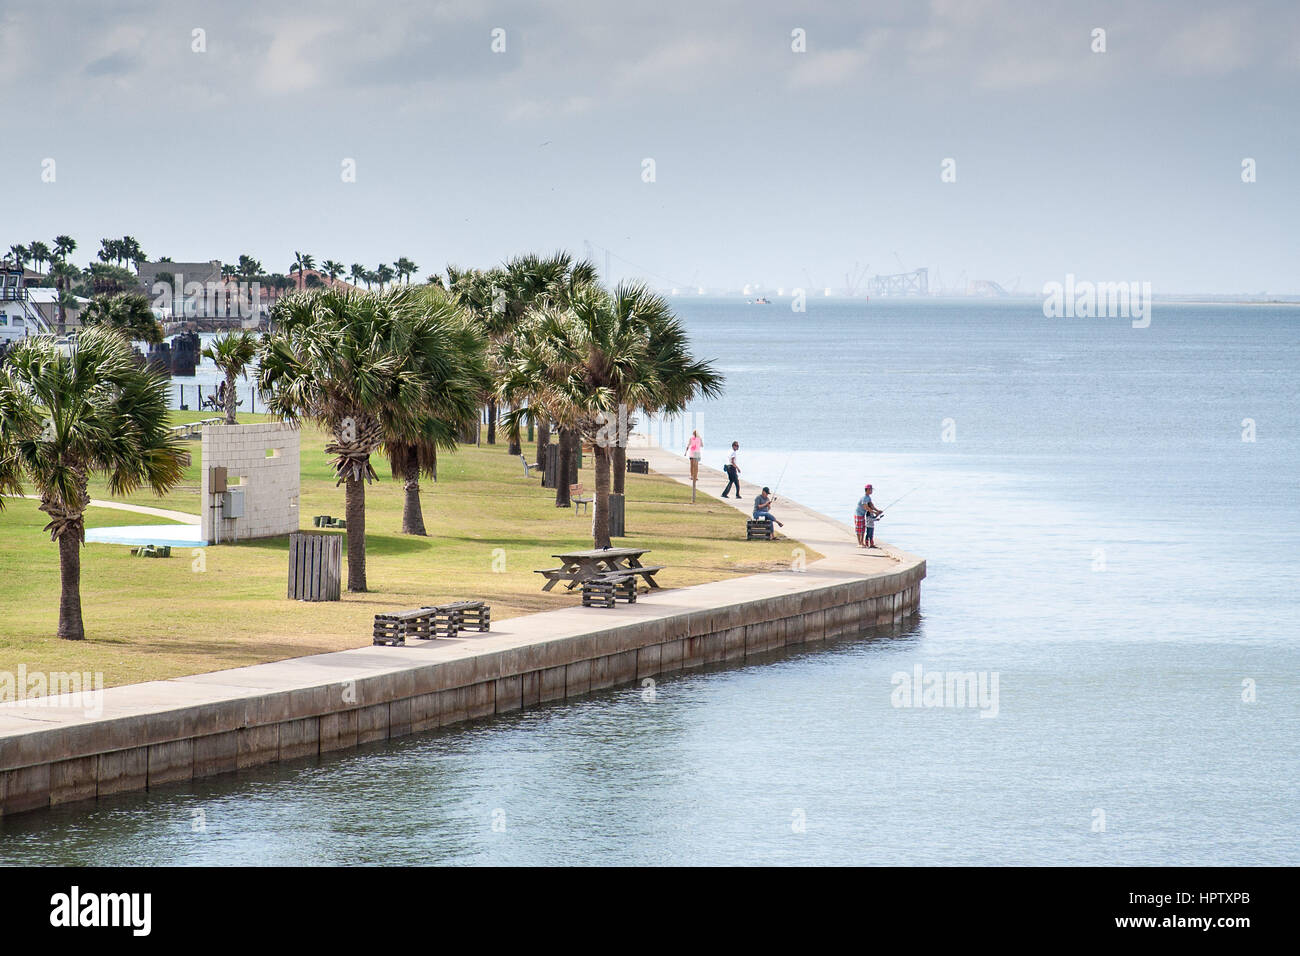 A scene from the overlook at Robert's Point Park in Port Aransas, Texas - Stock Image